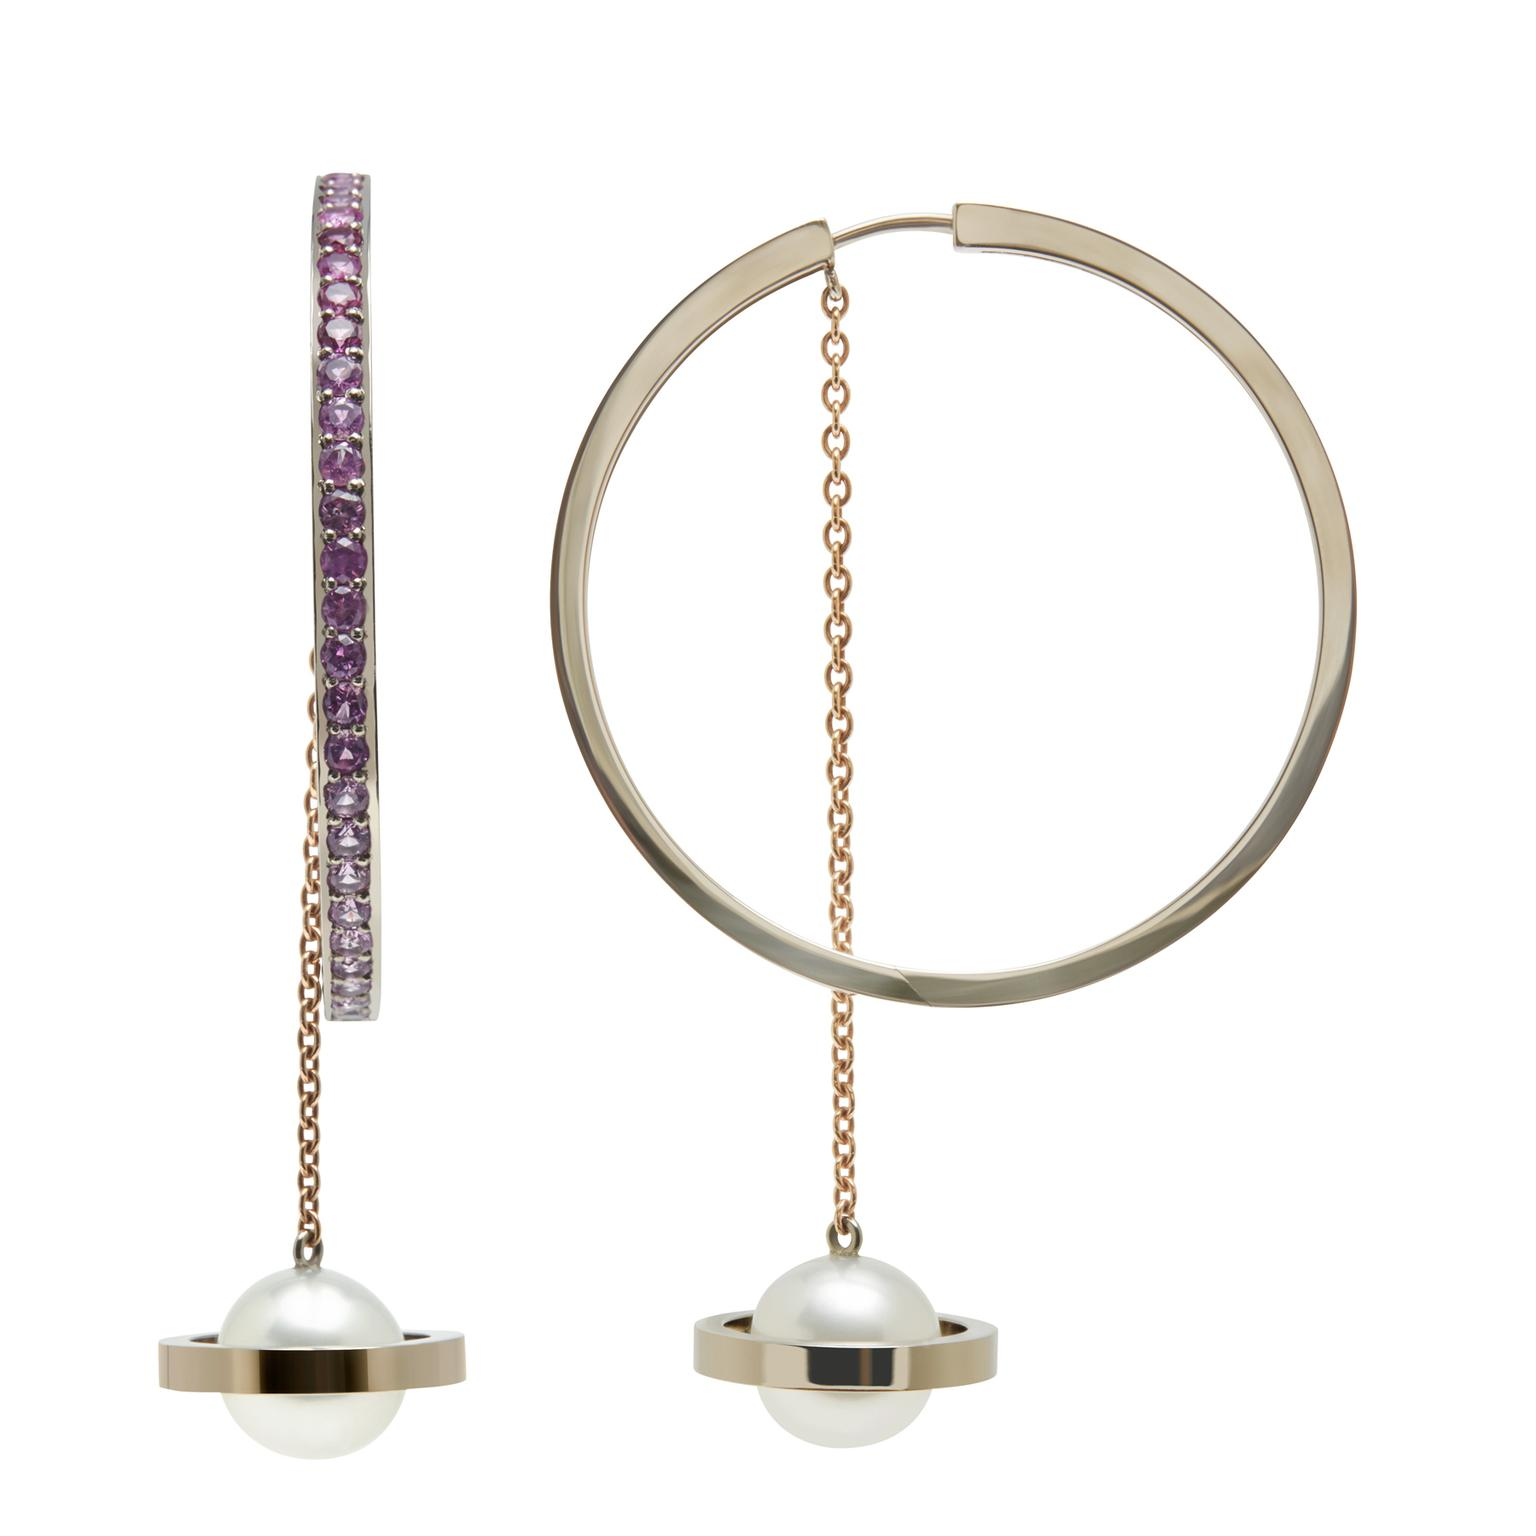 Alina Abegg Saturnation Hoop earrings